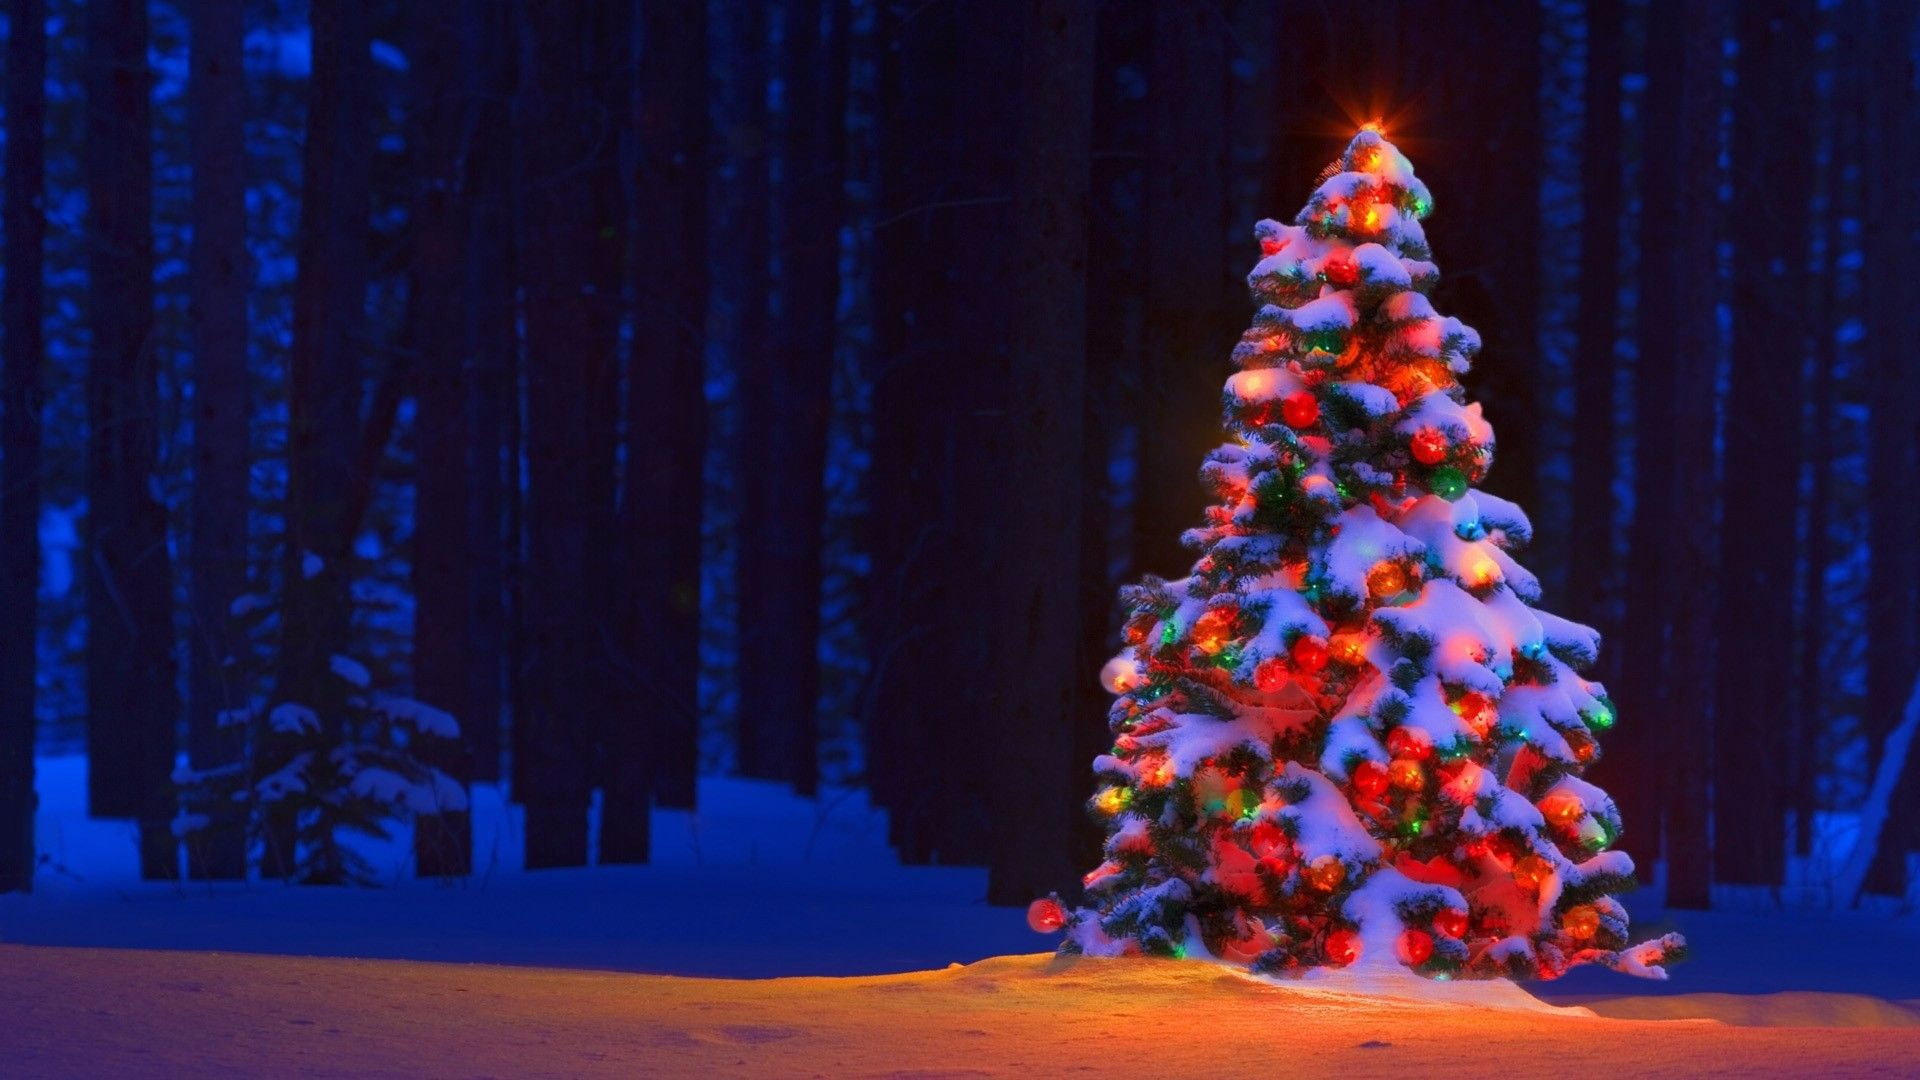 Pin By Tim Fielding On Christmas Paper Christmas Tree Wallpaper Christmas Lights Wallpaper Christmas Lights Background